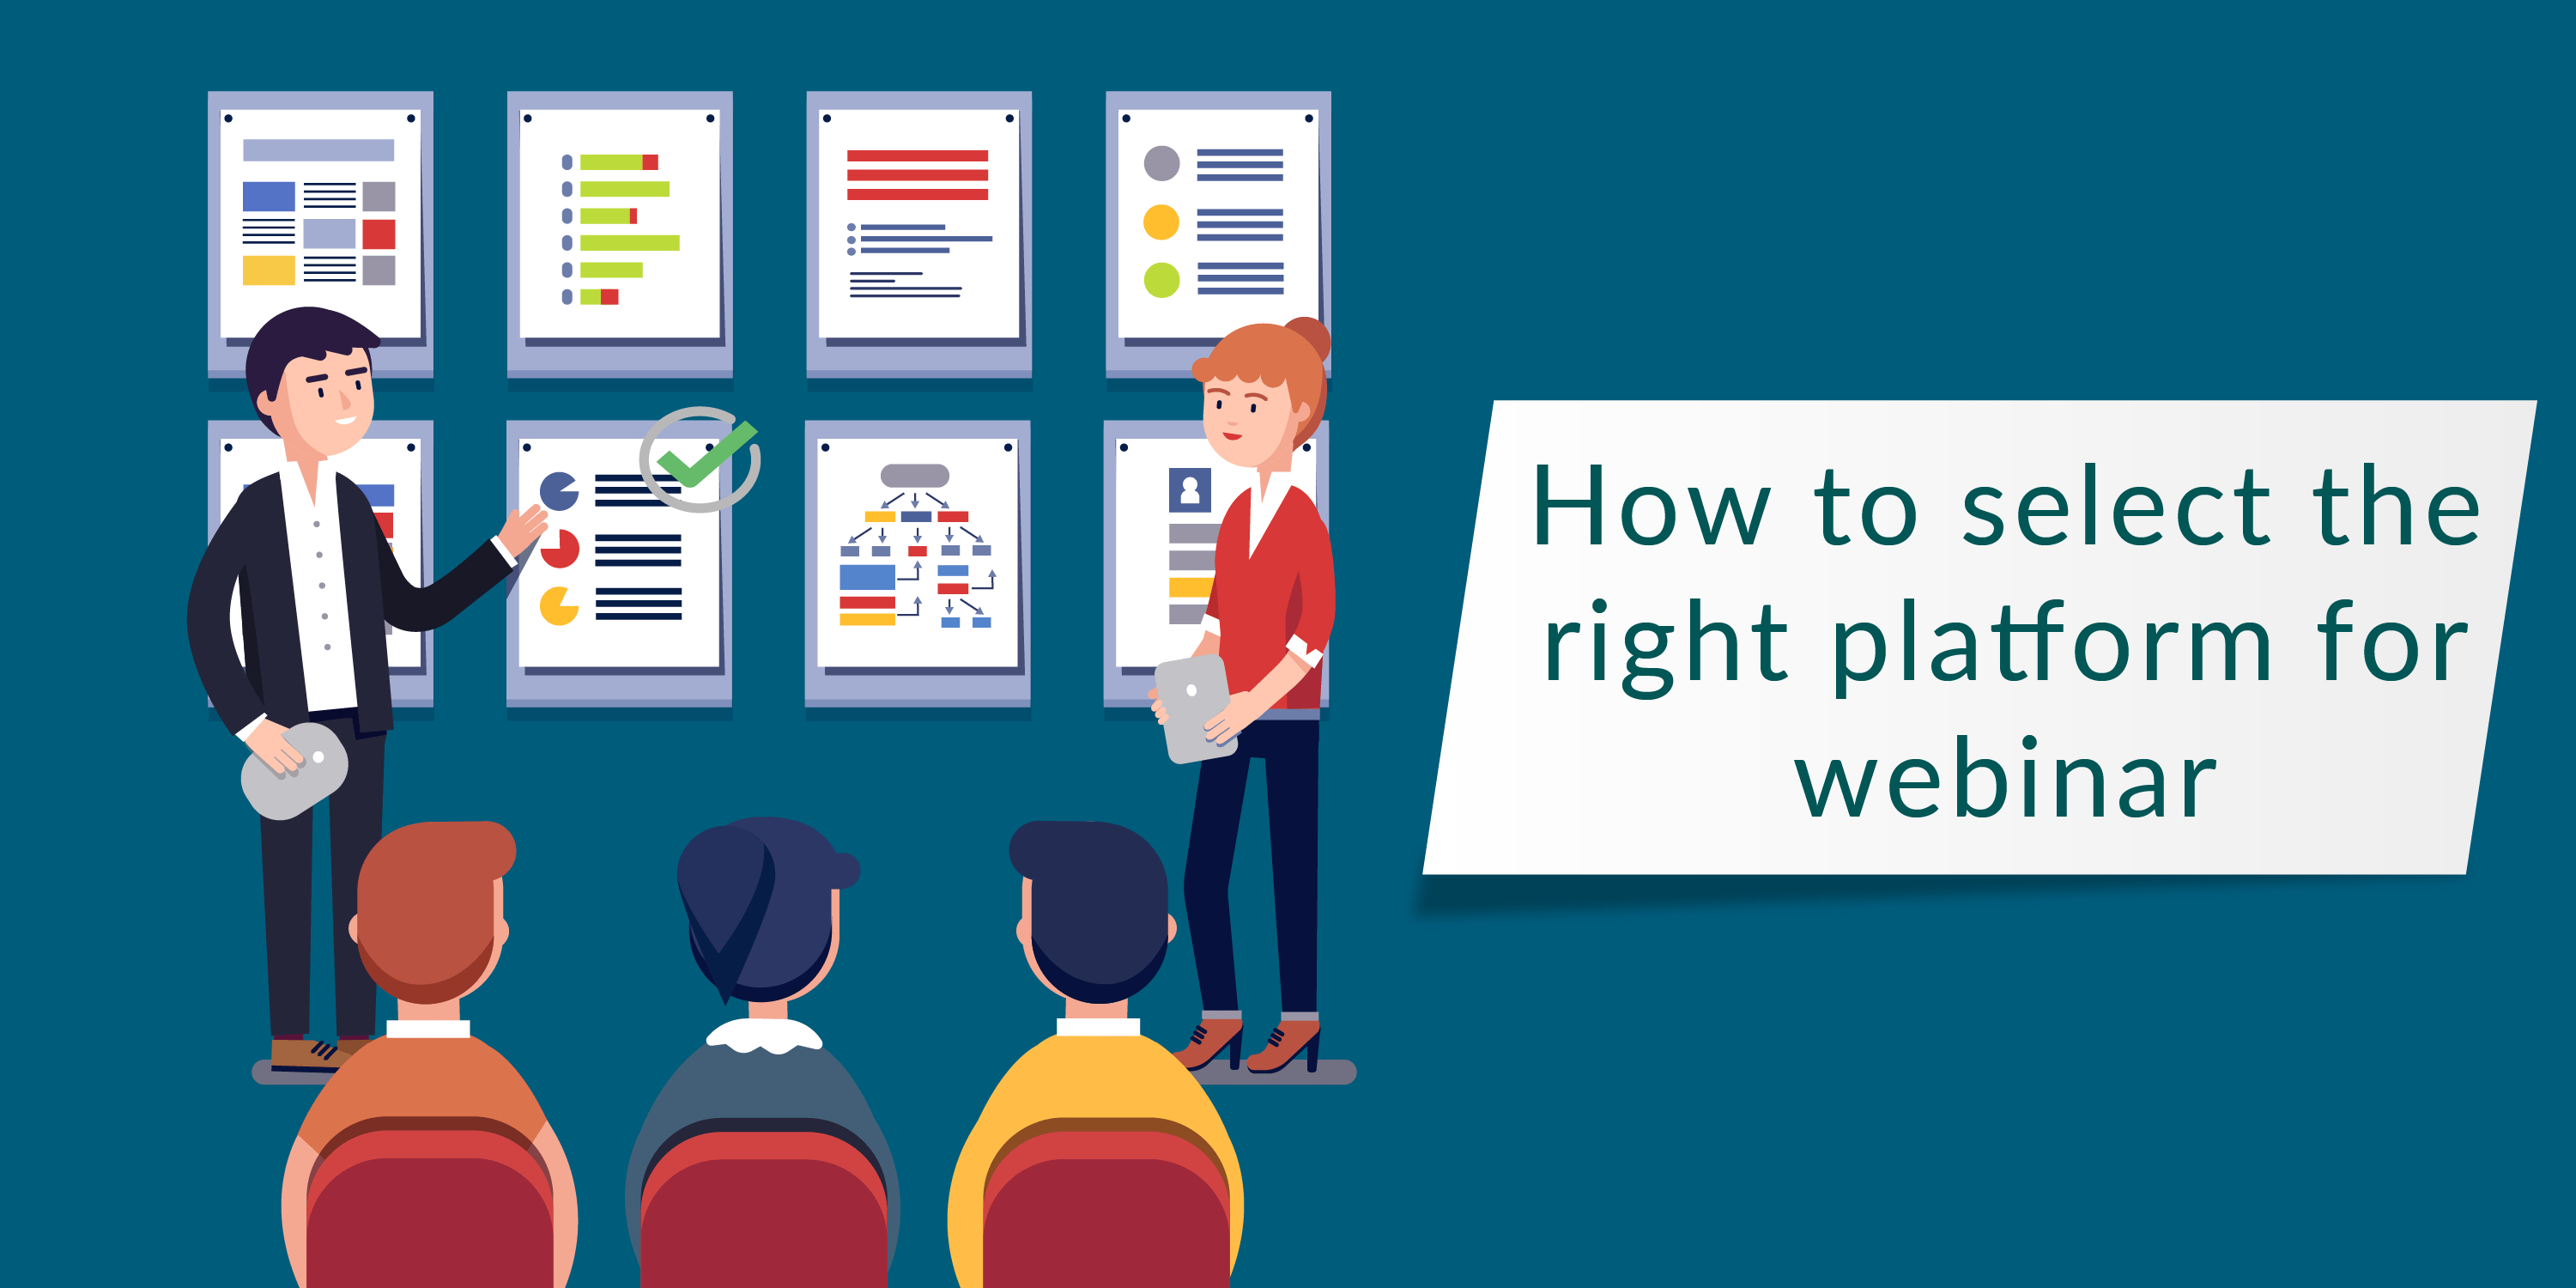 HOW TO SELECT THE RIGHT PLATFORM FOR WEBINAR